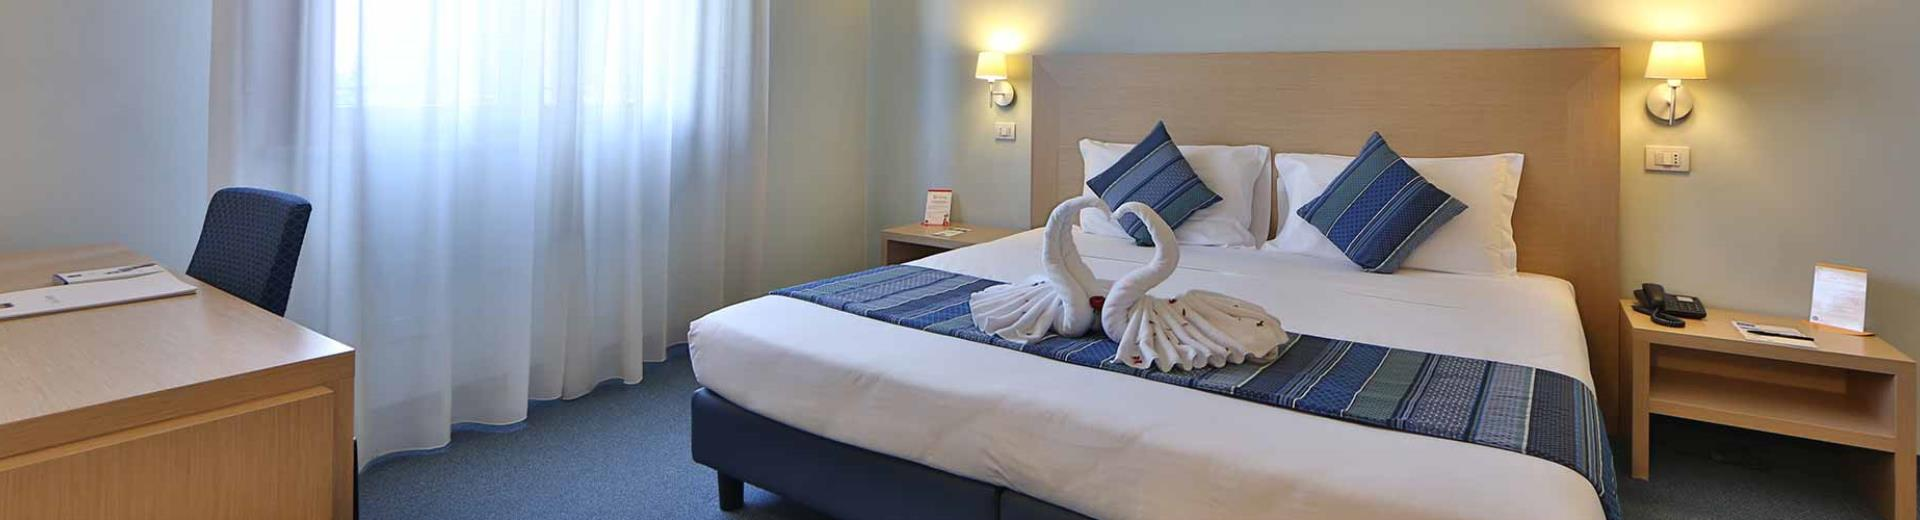 Looking for a hotel for your stay in Cerese  di Virgilio (MN)? Book/reserve at the Best Western Hotel Cristallo